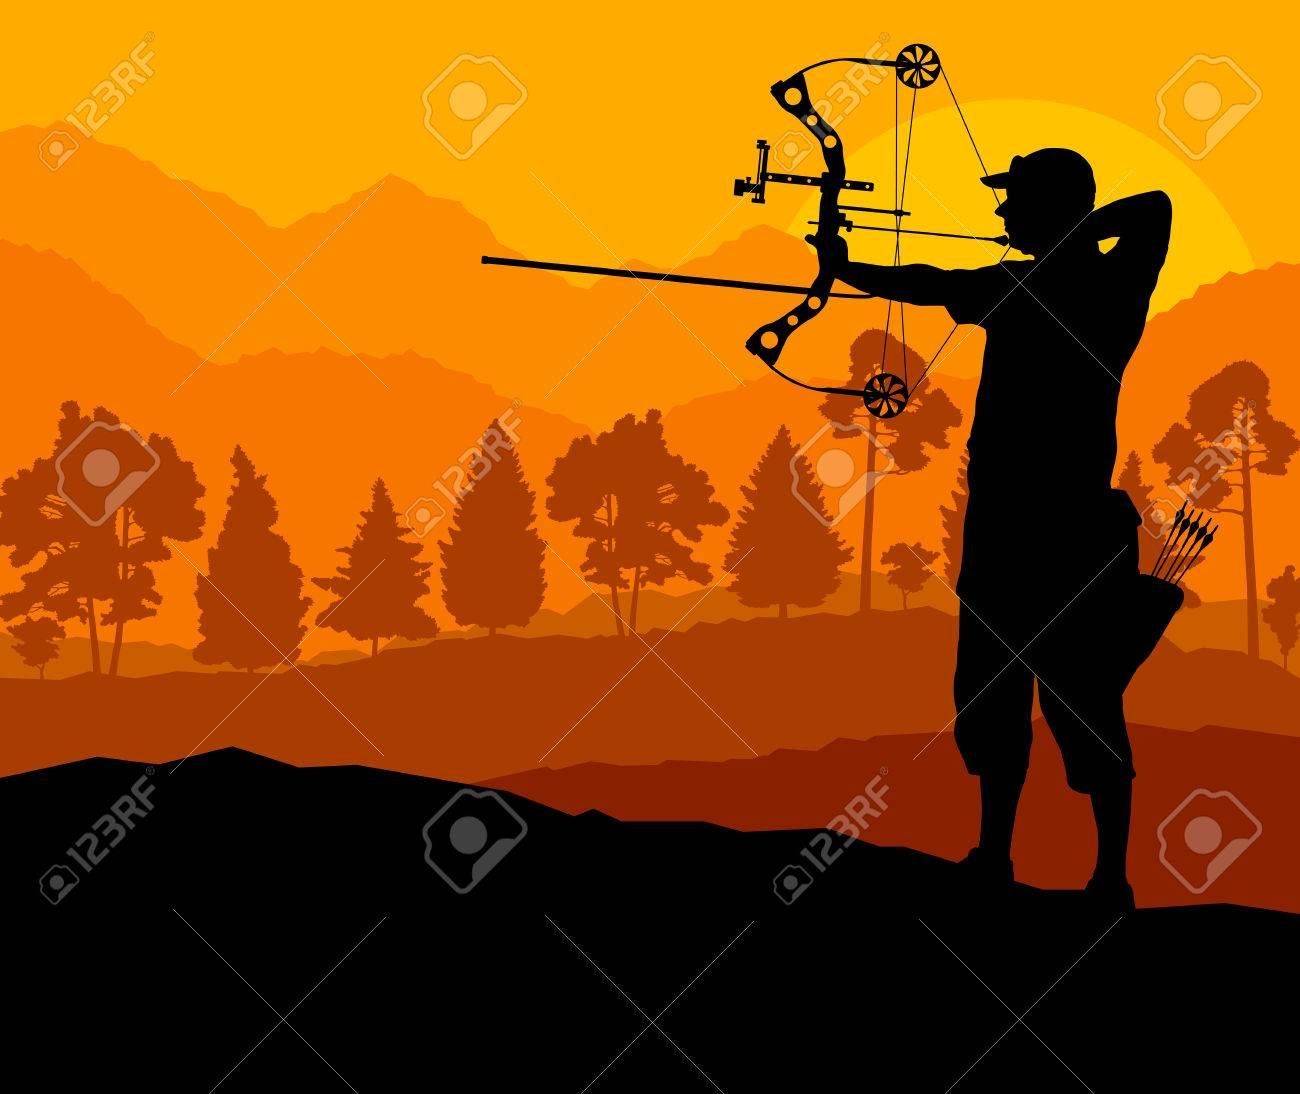 Active archery sport silhouette background vector in nature - 33872277